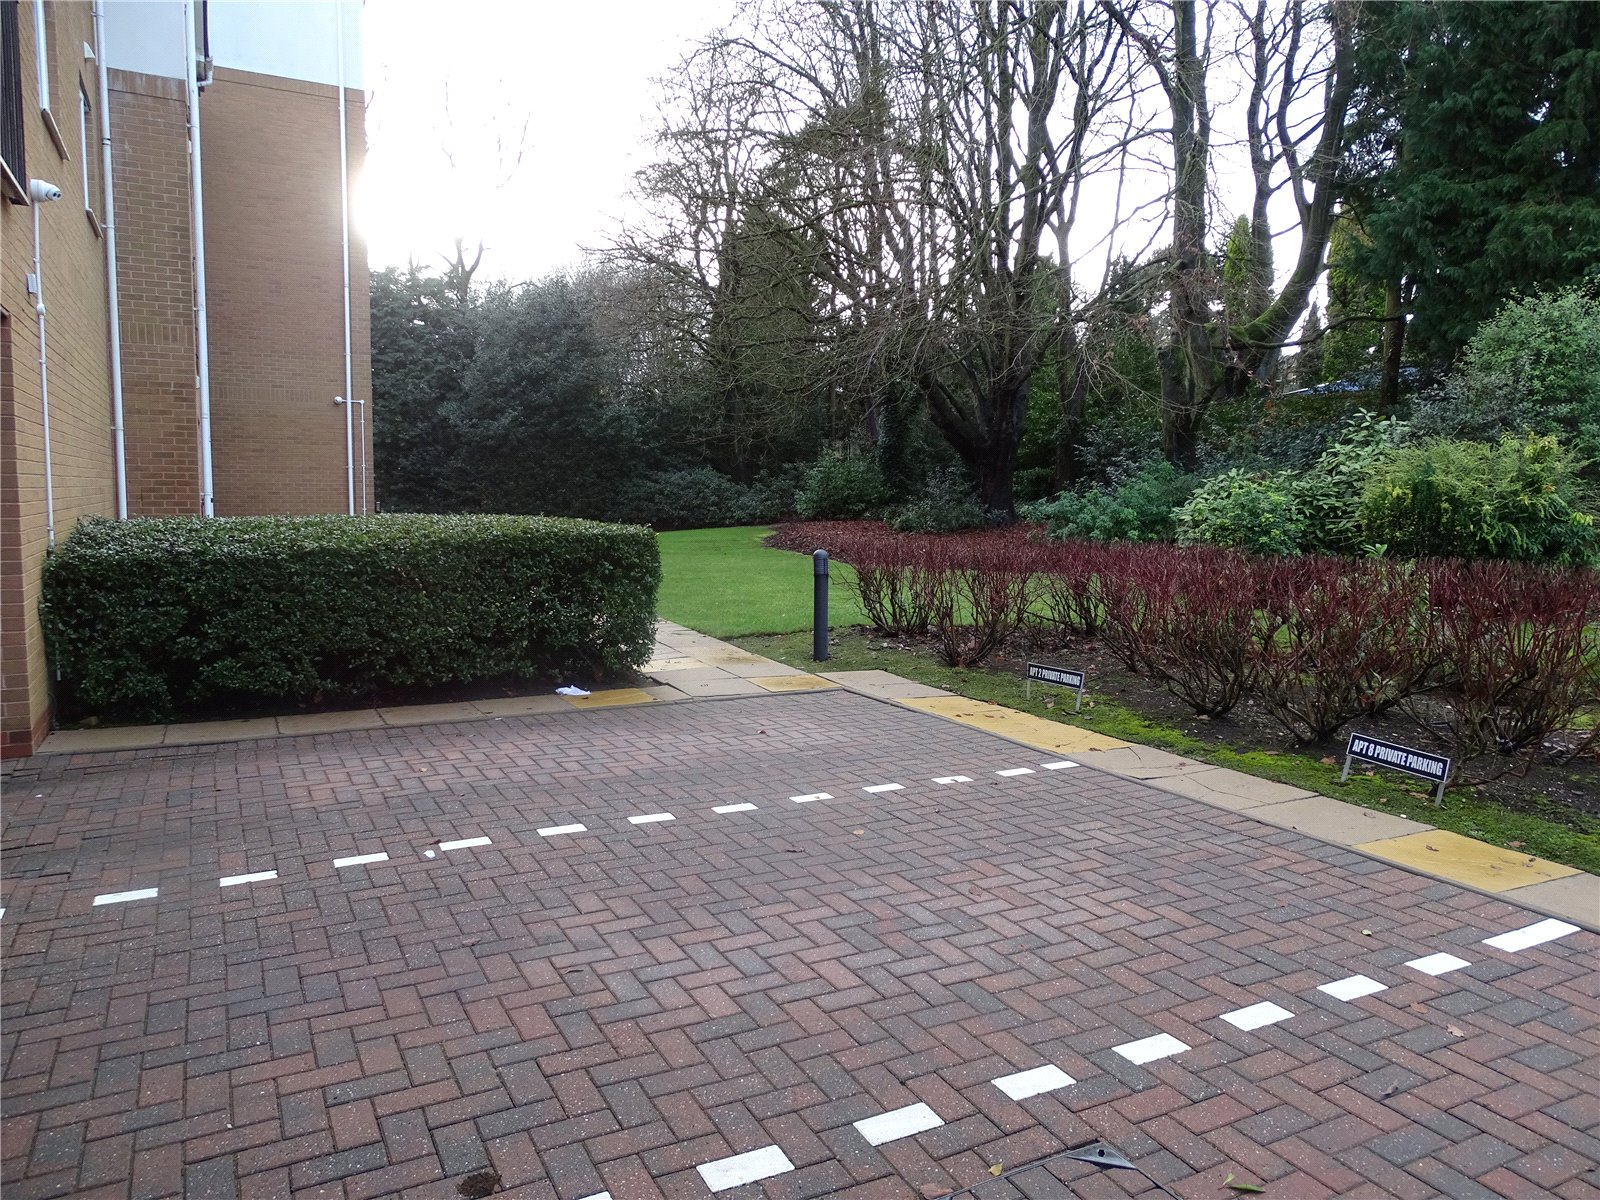 Parking/Grounds